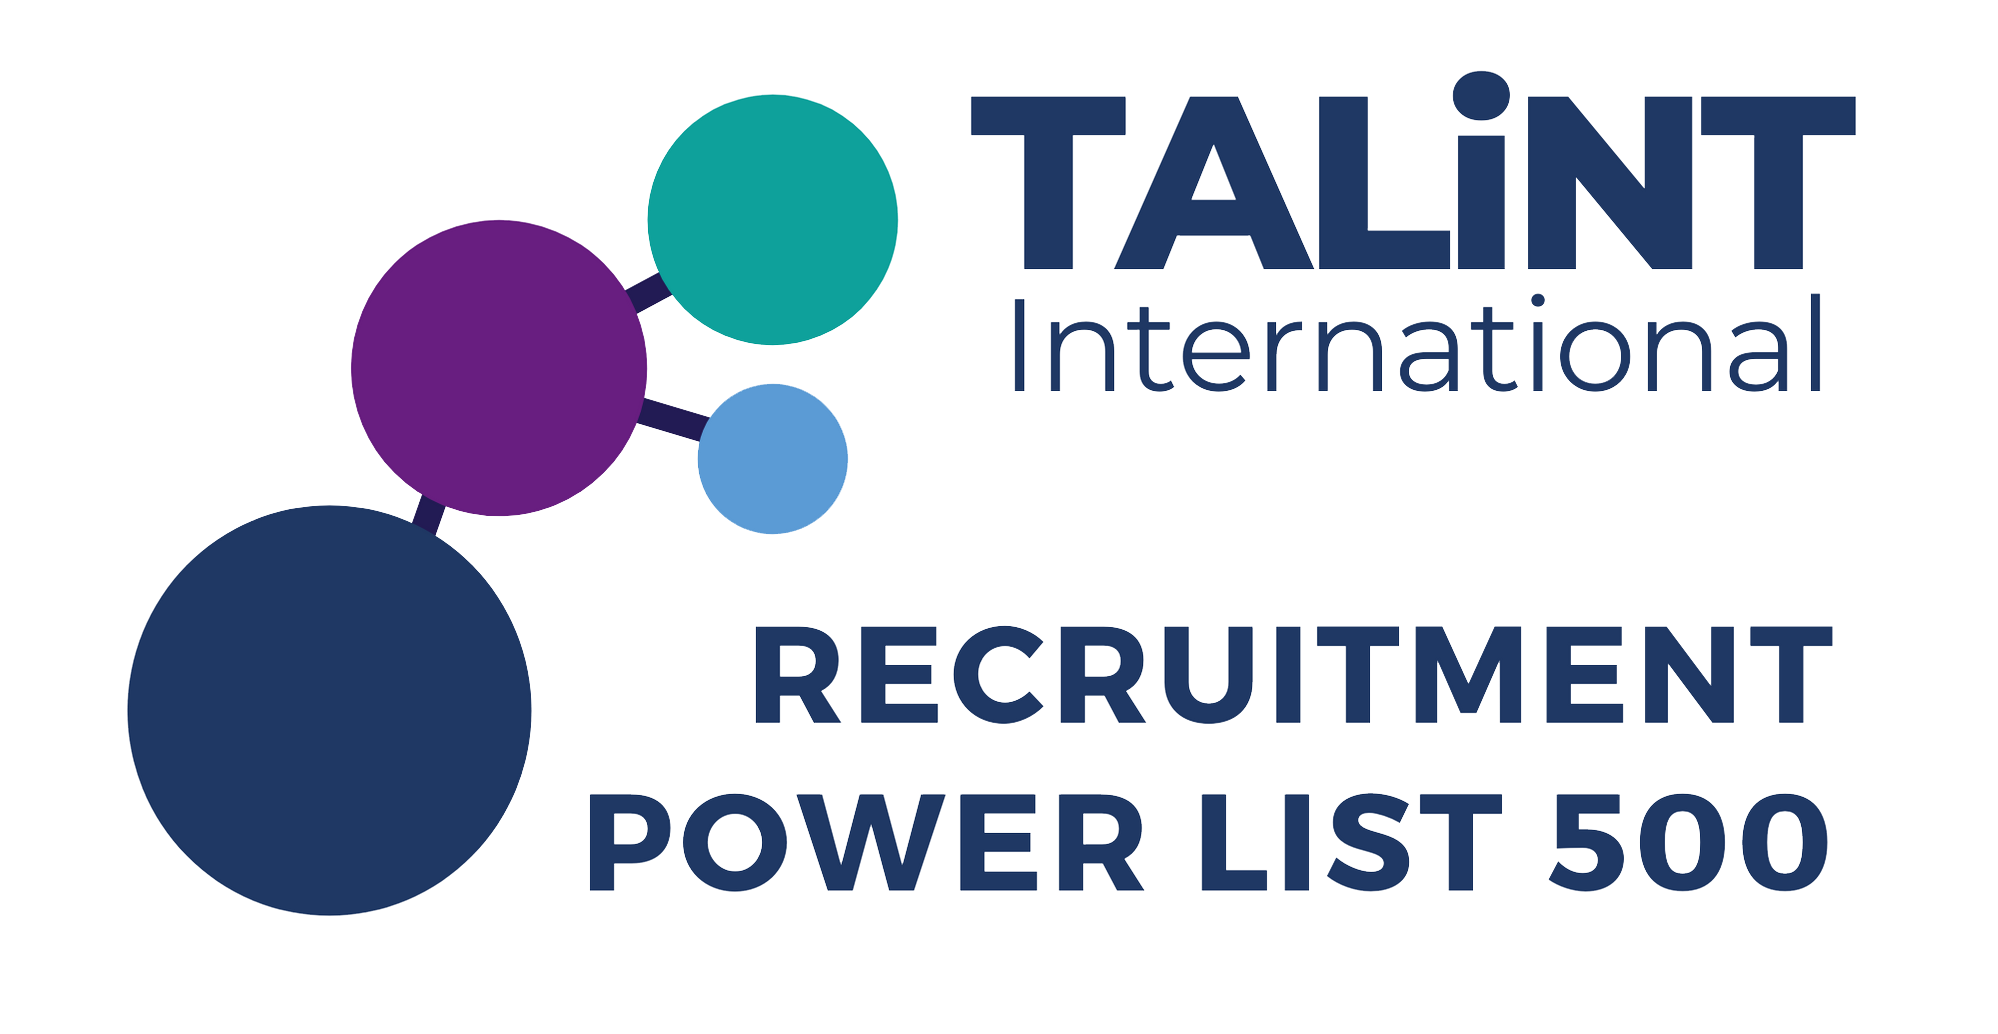 Talint logo - recruitment 500 power list in footer